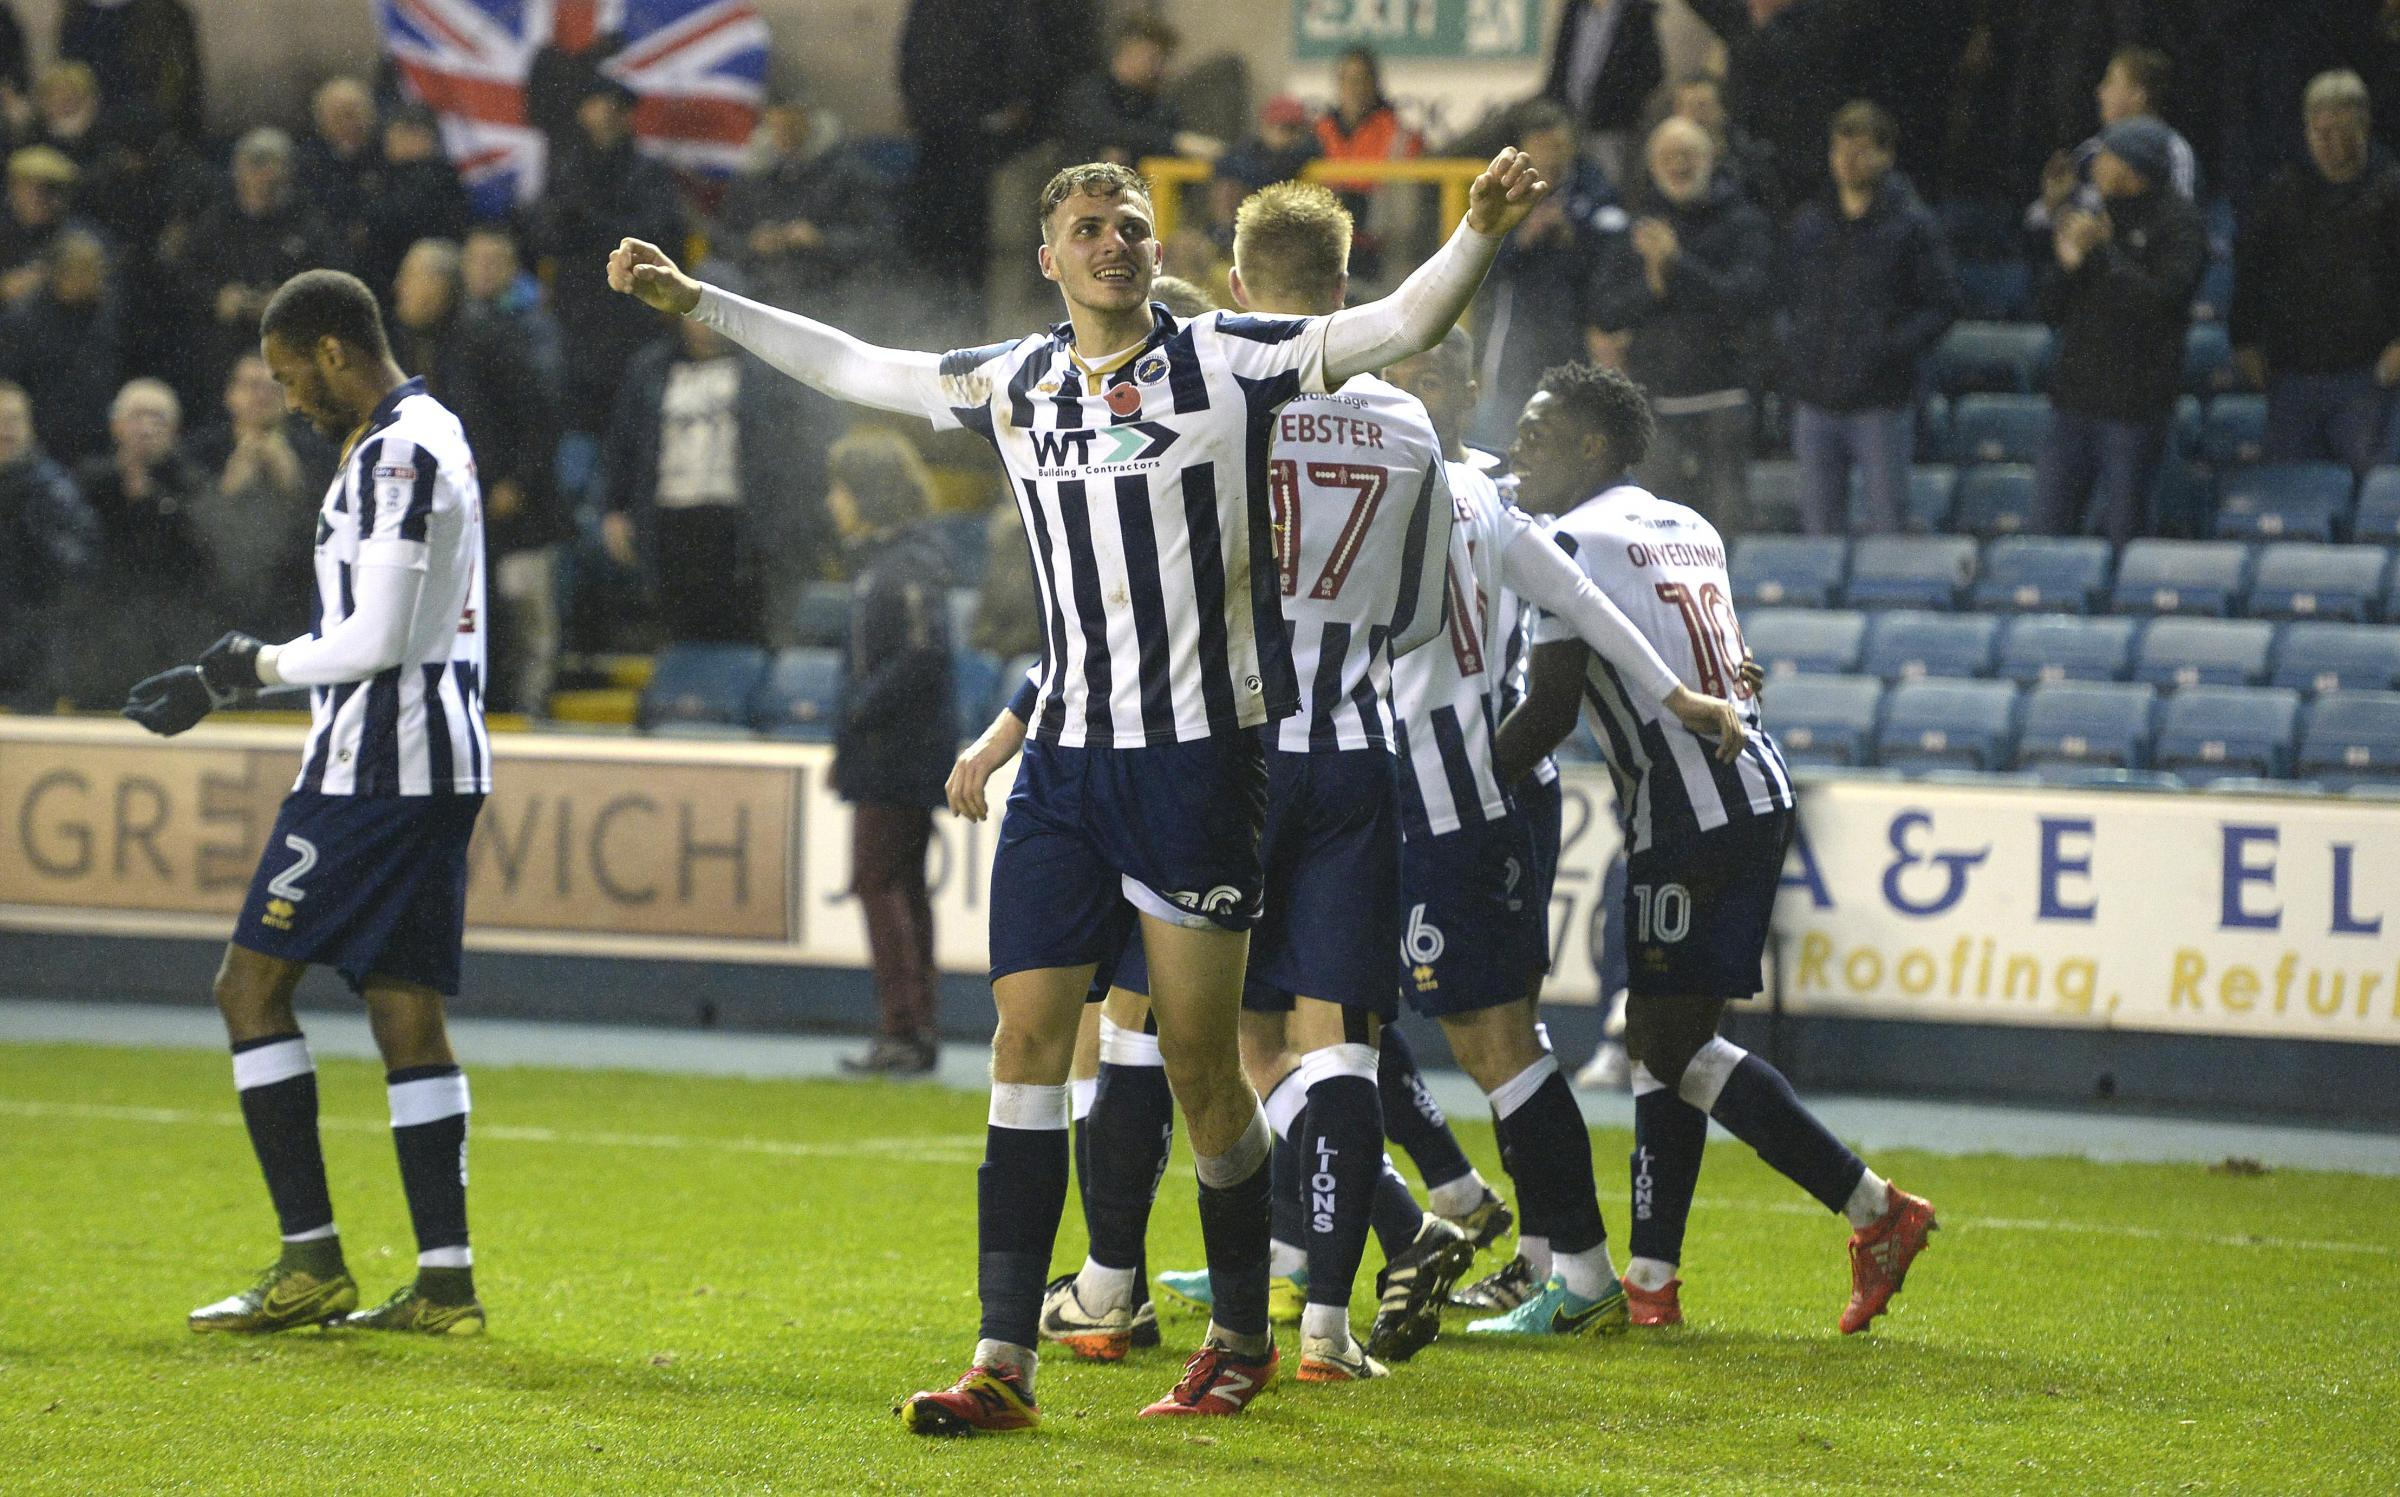 Harry Smith celebrates scoring for Millwall Picture: MILLWALL FOOTBALL CLUB